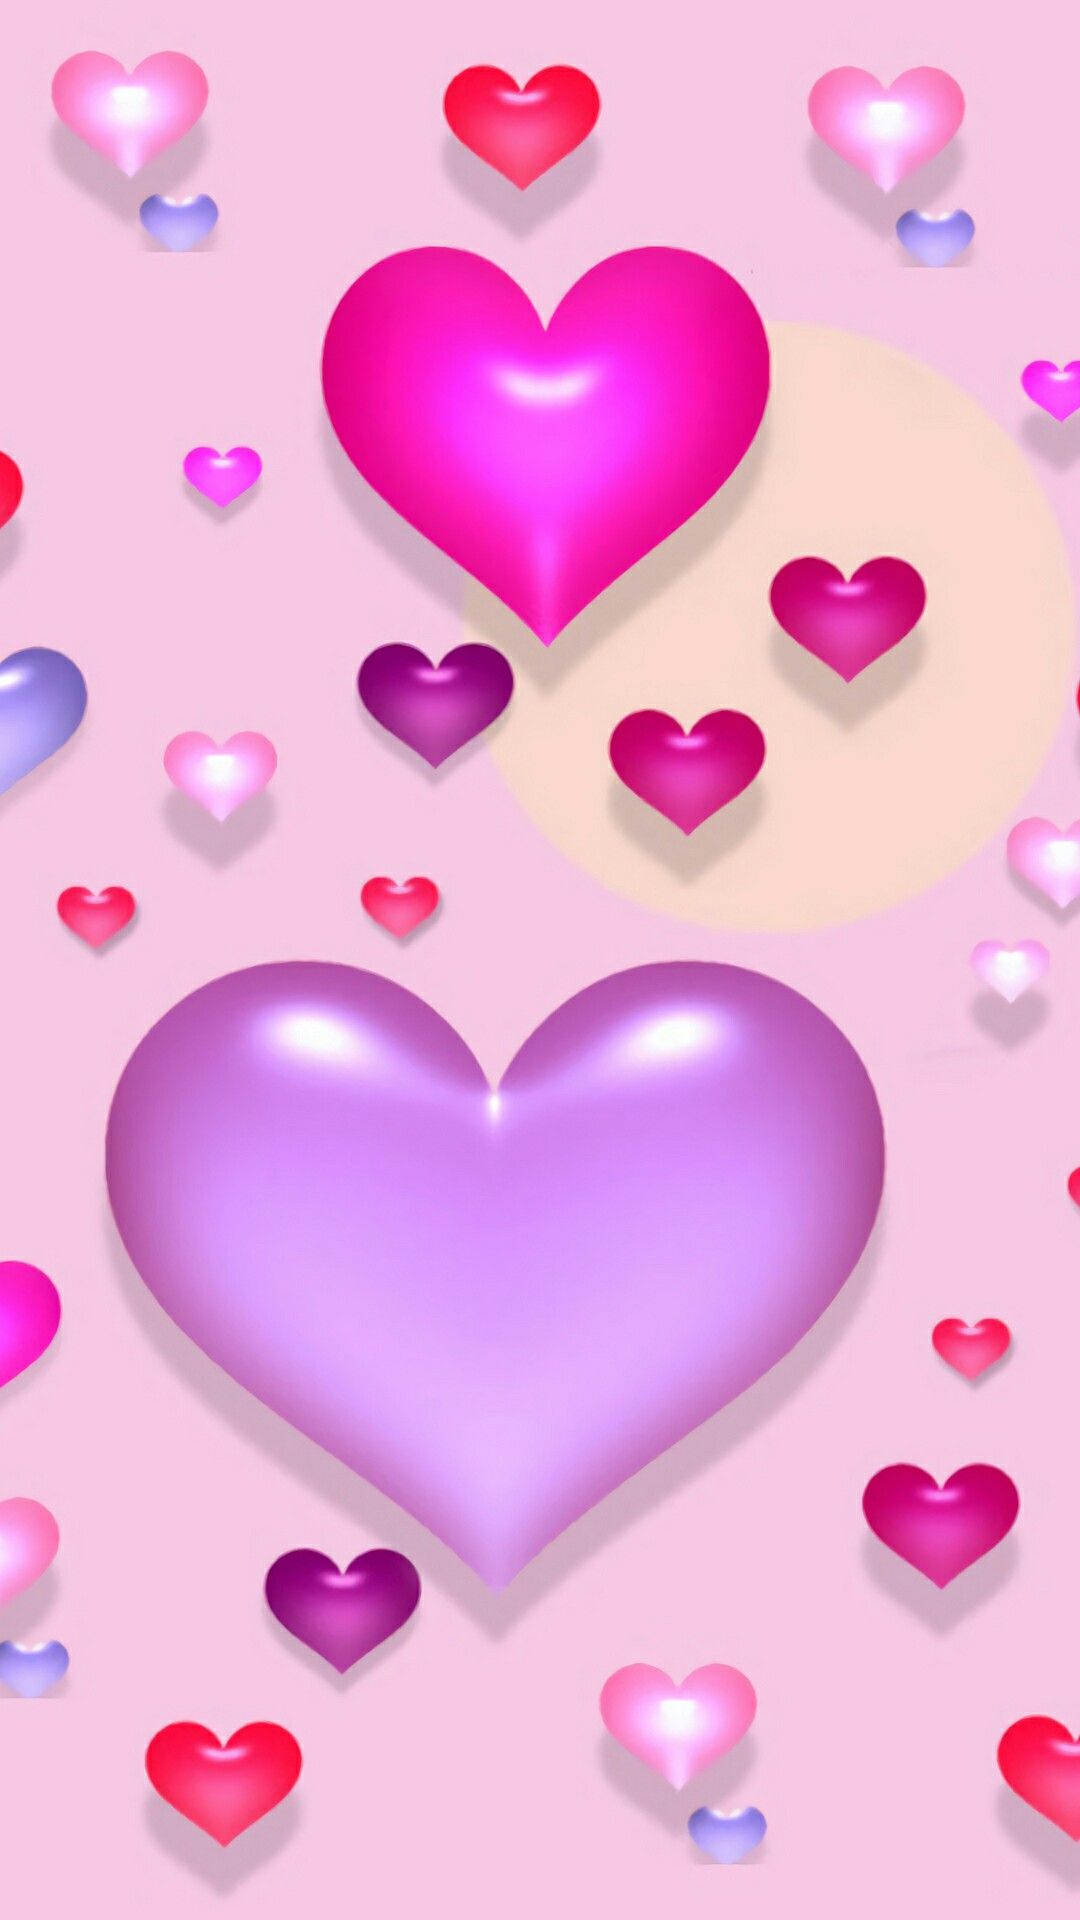 Pink And Purple Hearts Cute Girlie Wallpaper In 2019